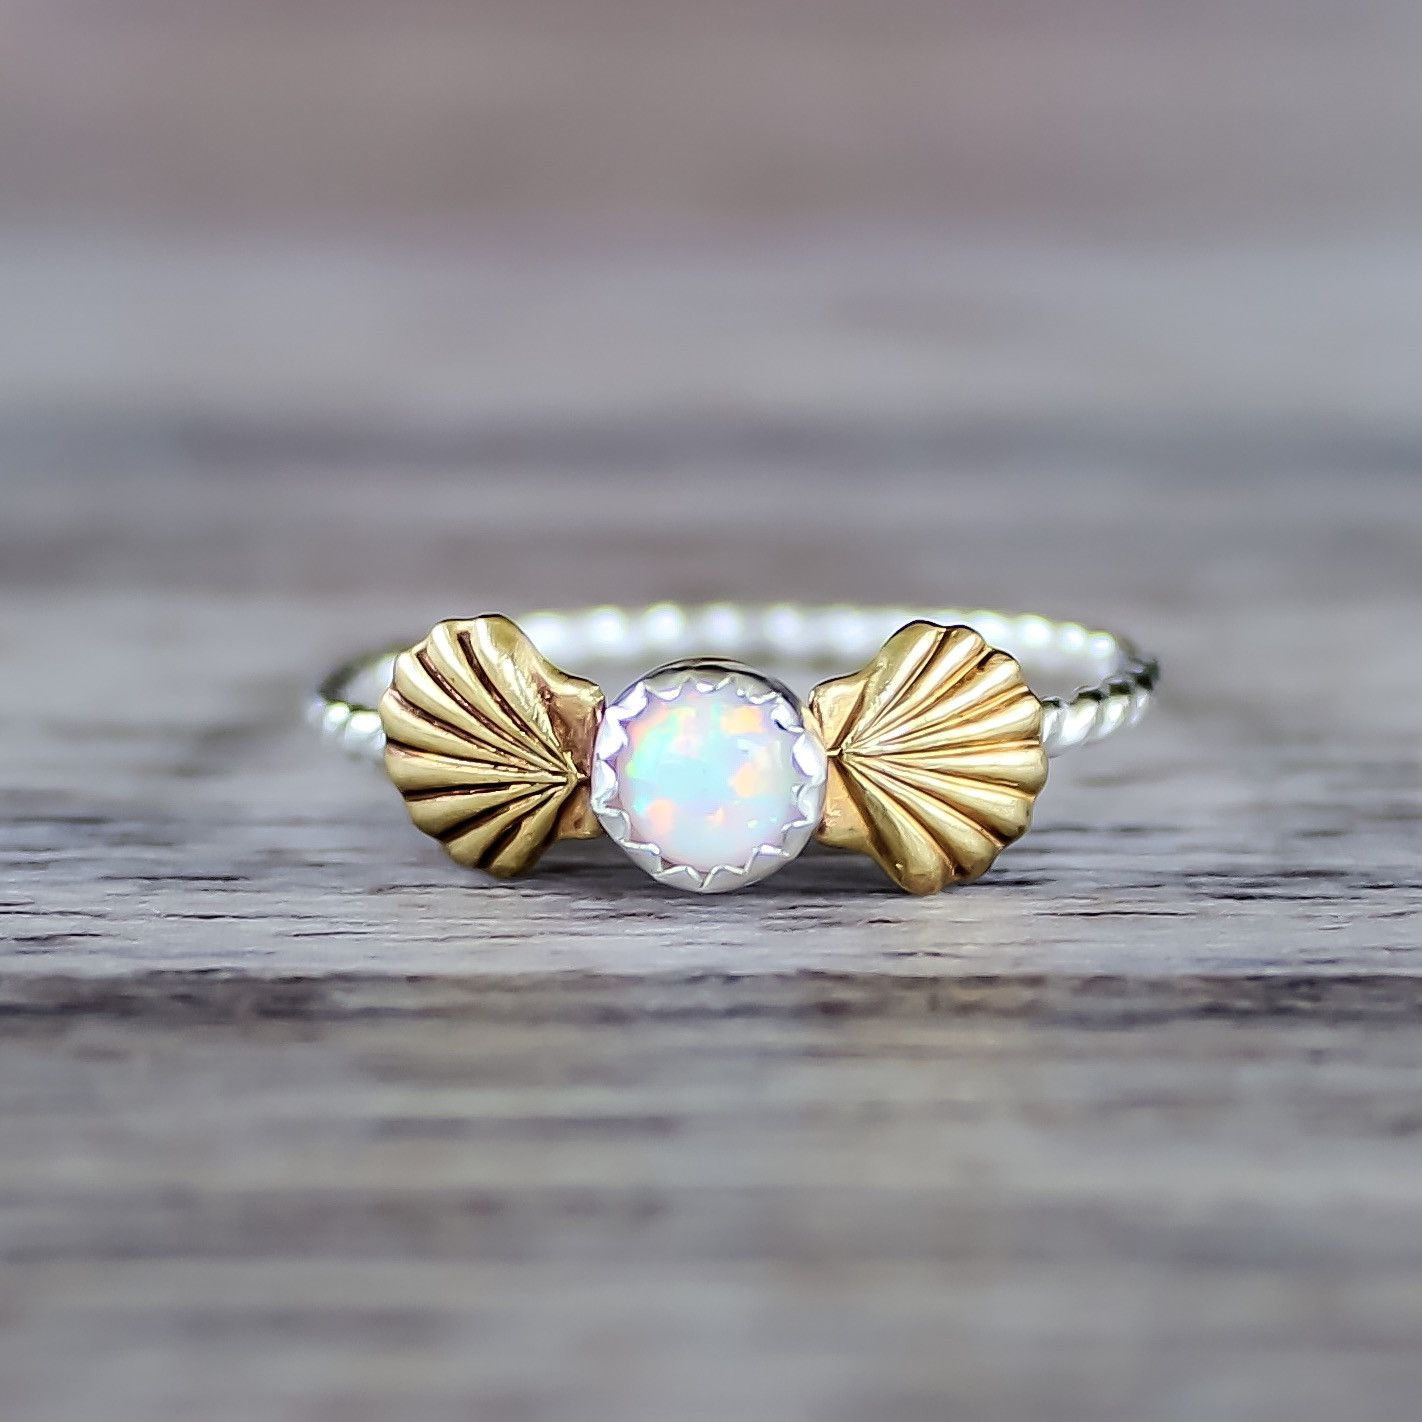 Mermaid Sea Shells And Opal Ring Jewelry Mermaid Ring